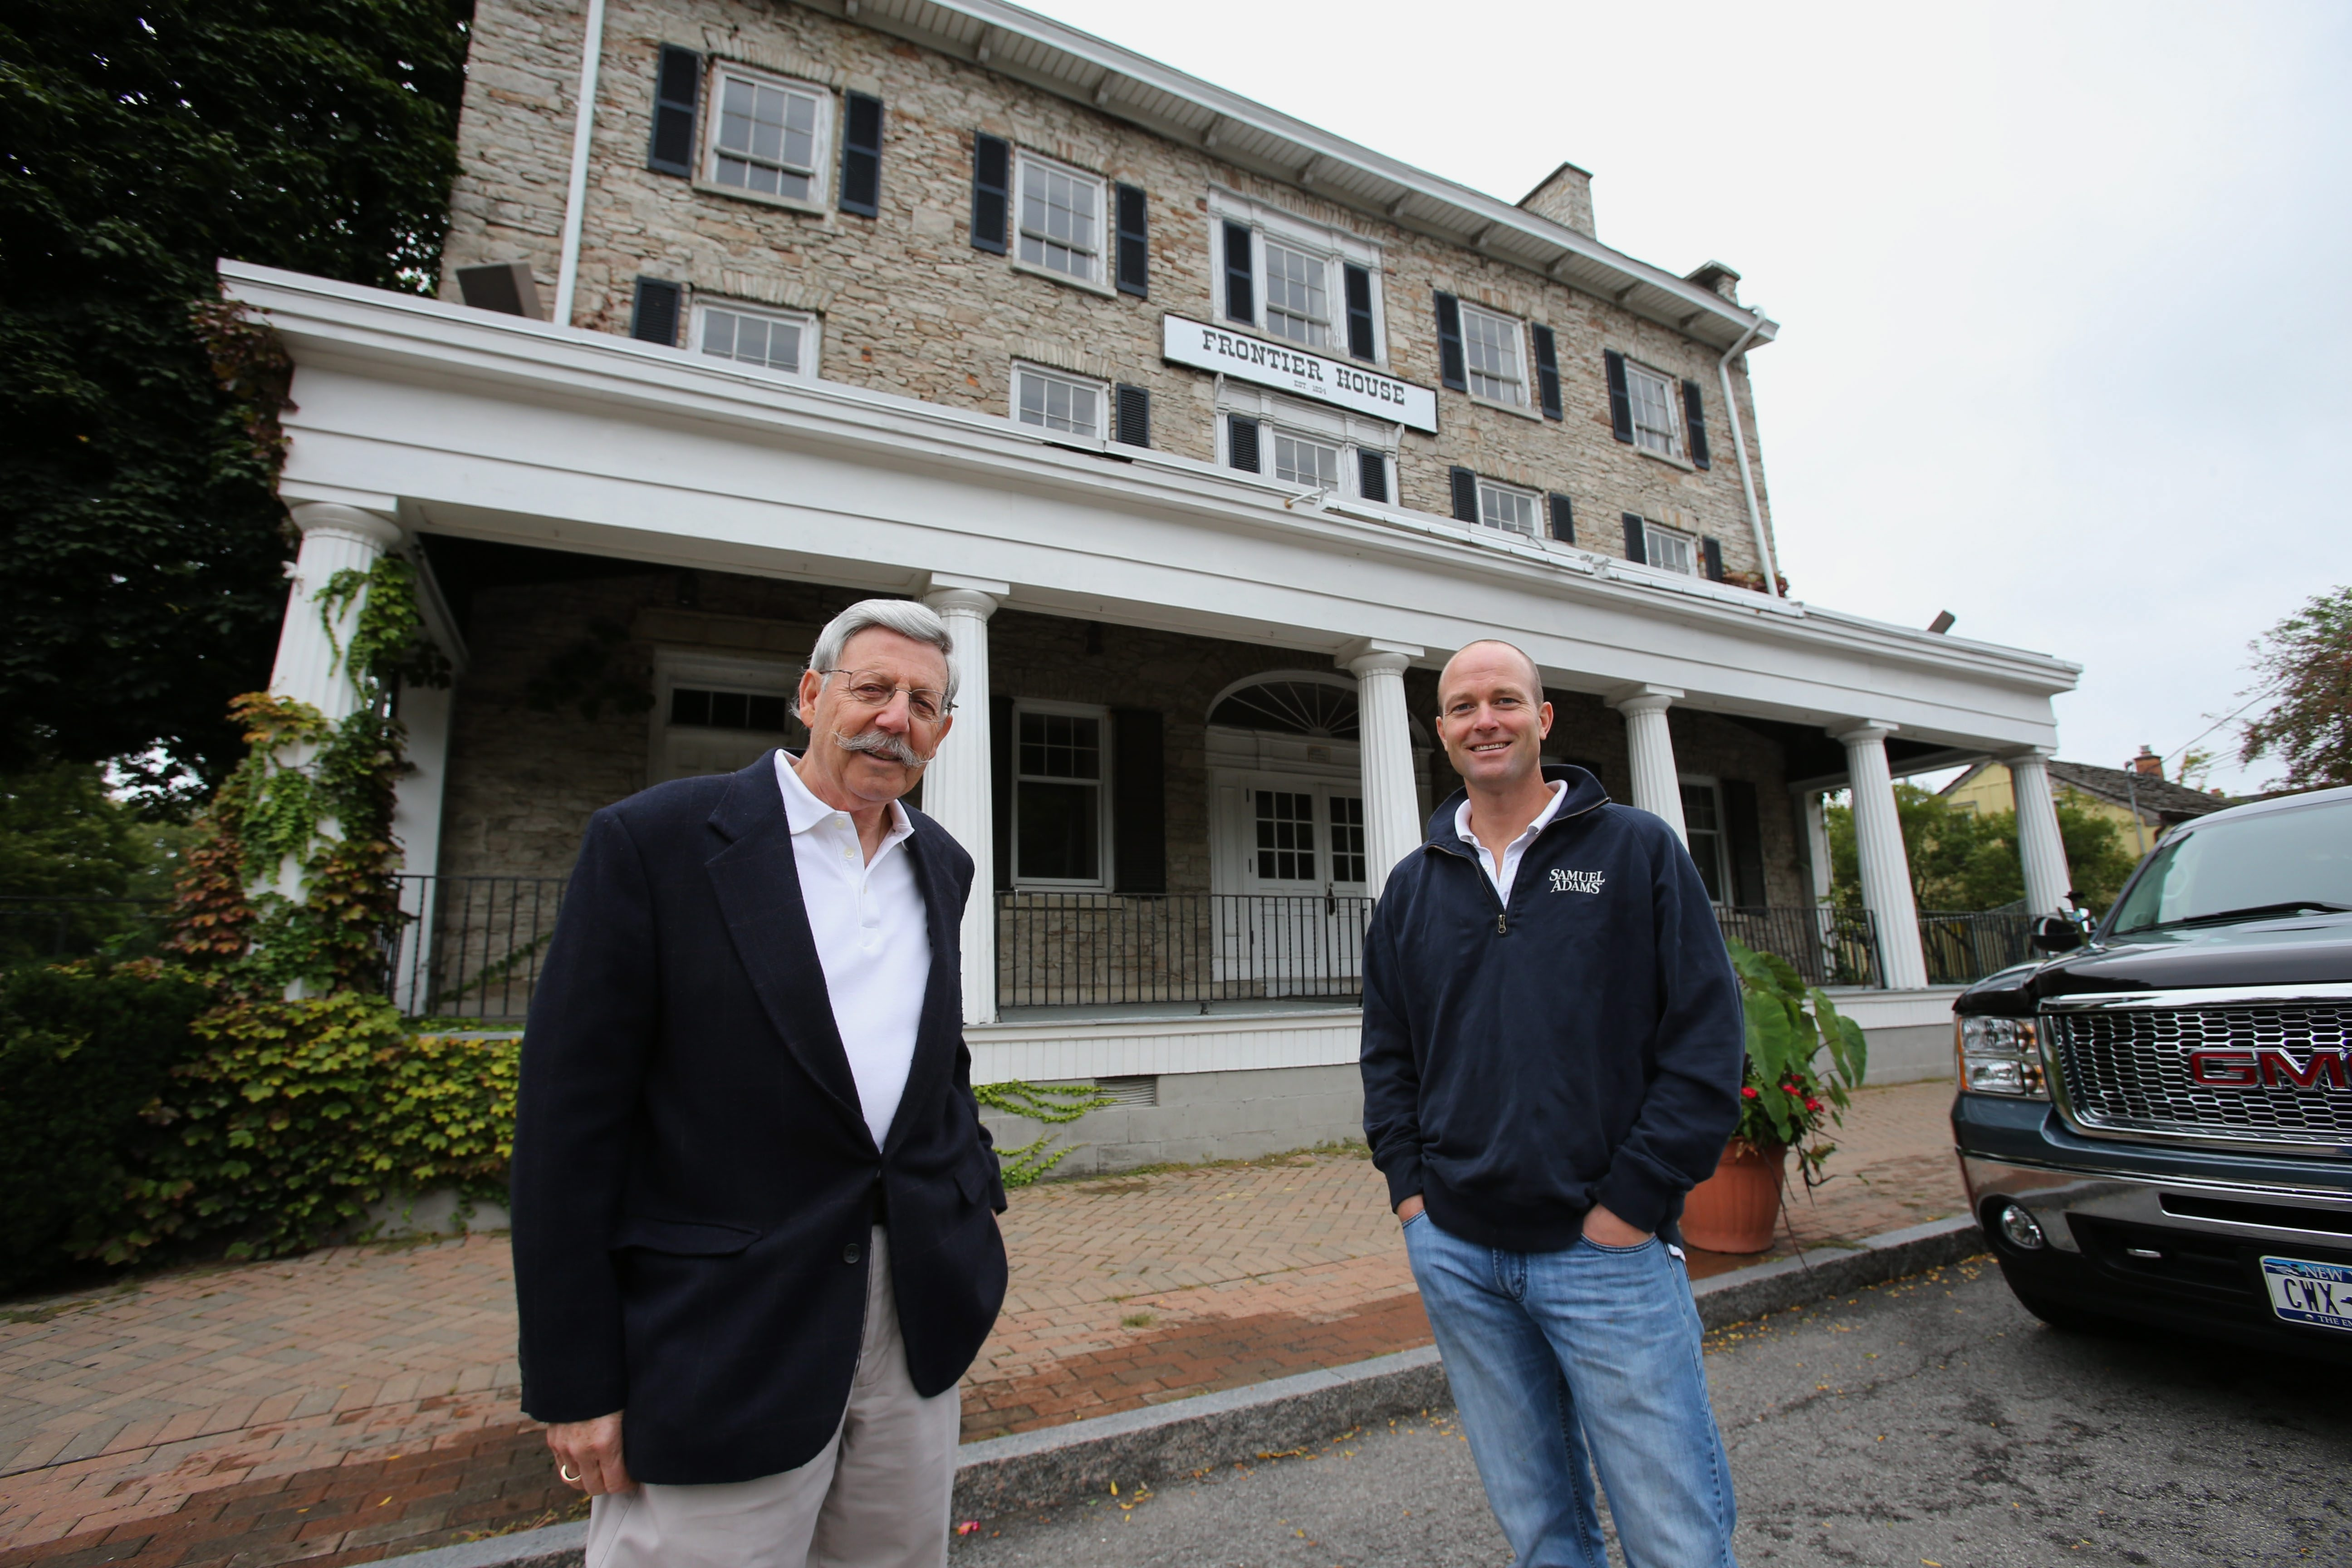 Lewiston Mayor Terry C. Collesano, left, joins Alan J. Hastings at historic Frontier House, which Hastings is hoping to turn into a microbrewery. The structure has been vacant since 2004, and the village is trying to get a state grant to expedite redevelopment.